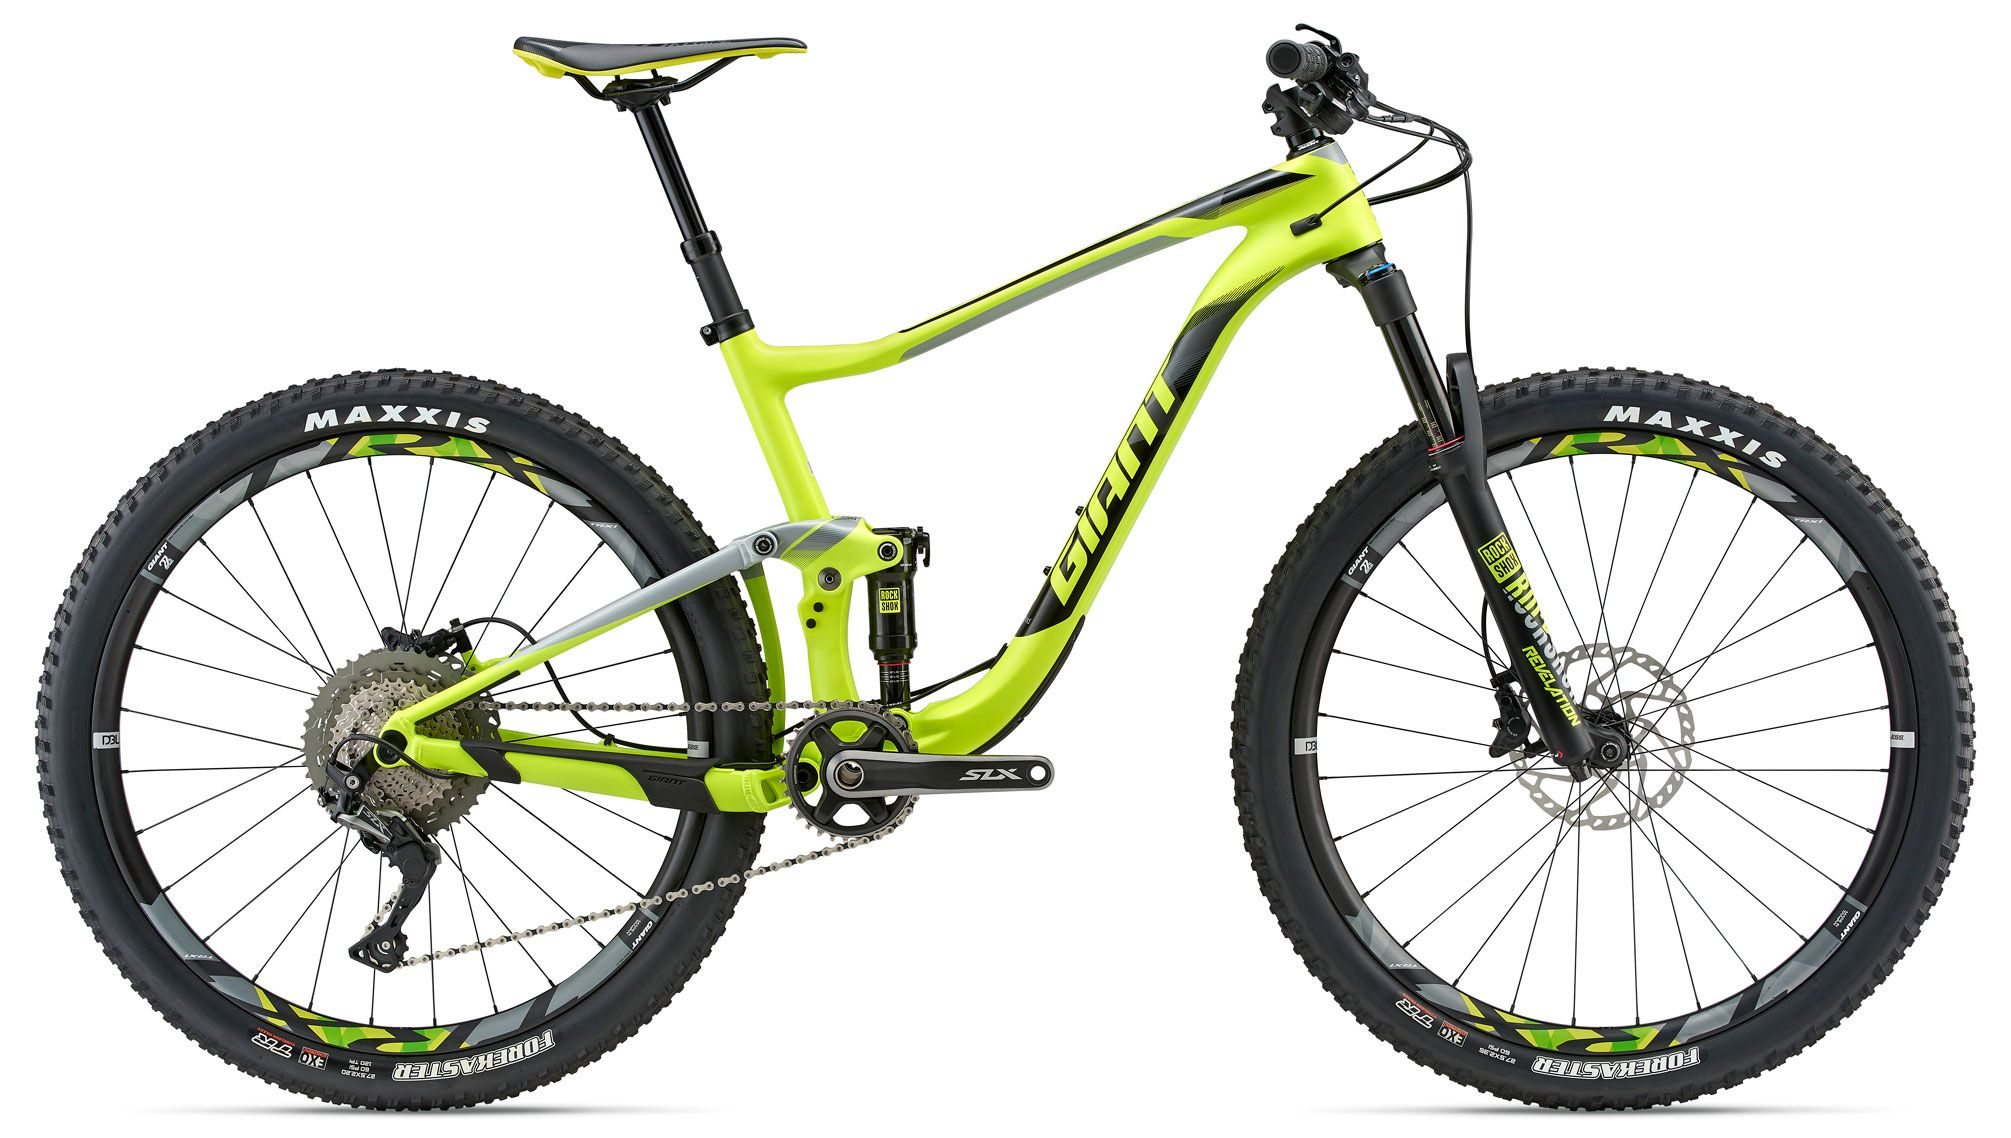 Велосипед Giant Anthem Advanced 2 2018 велосипед giant xtc advanced 27 5 2 2014